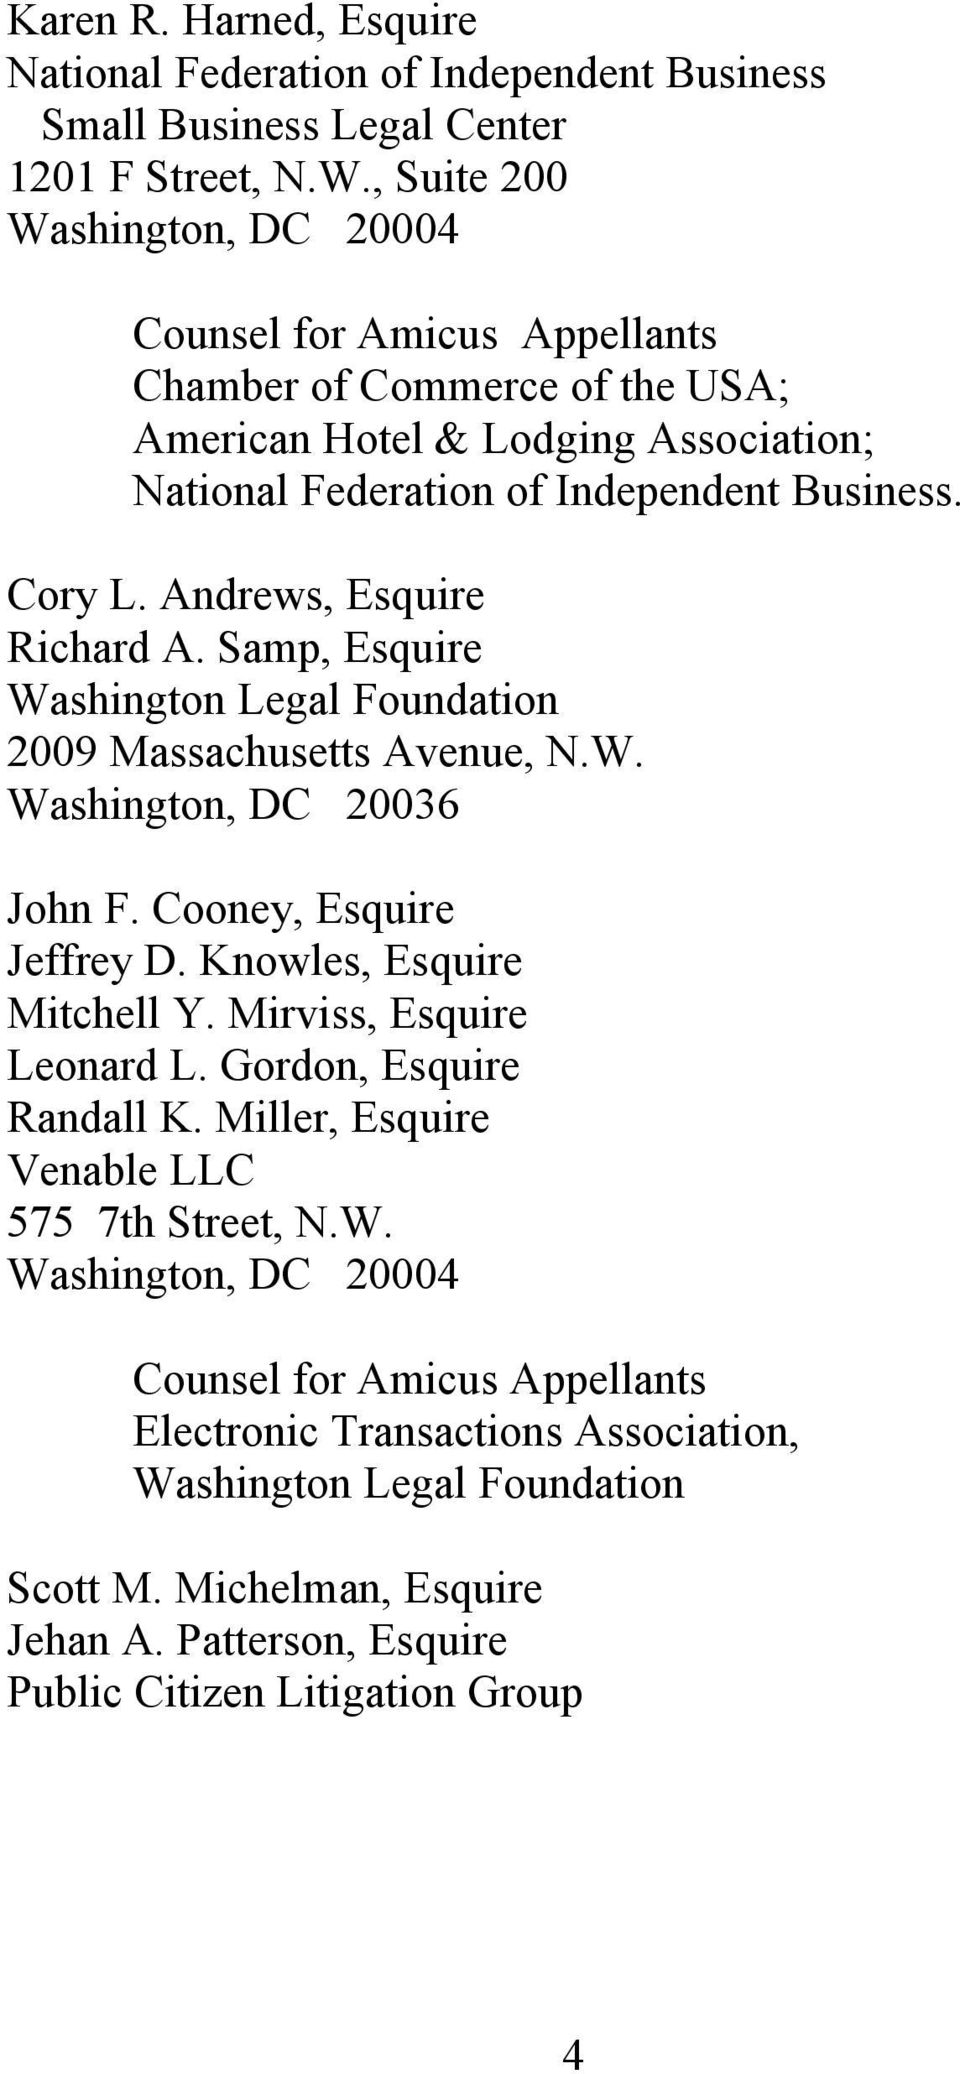 Andrews, Esquire Richard A. Samp, Esquire Washington Legal Foundation 2009 Massachusetts Avenue, N.W. Washington, DC 20036 John F. Cooney, Esquire Jeffrey D. Knowles, Esquire Mitchell Y.